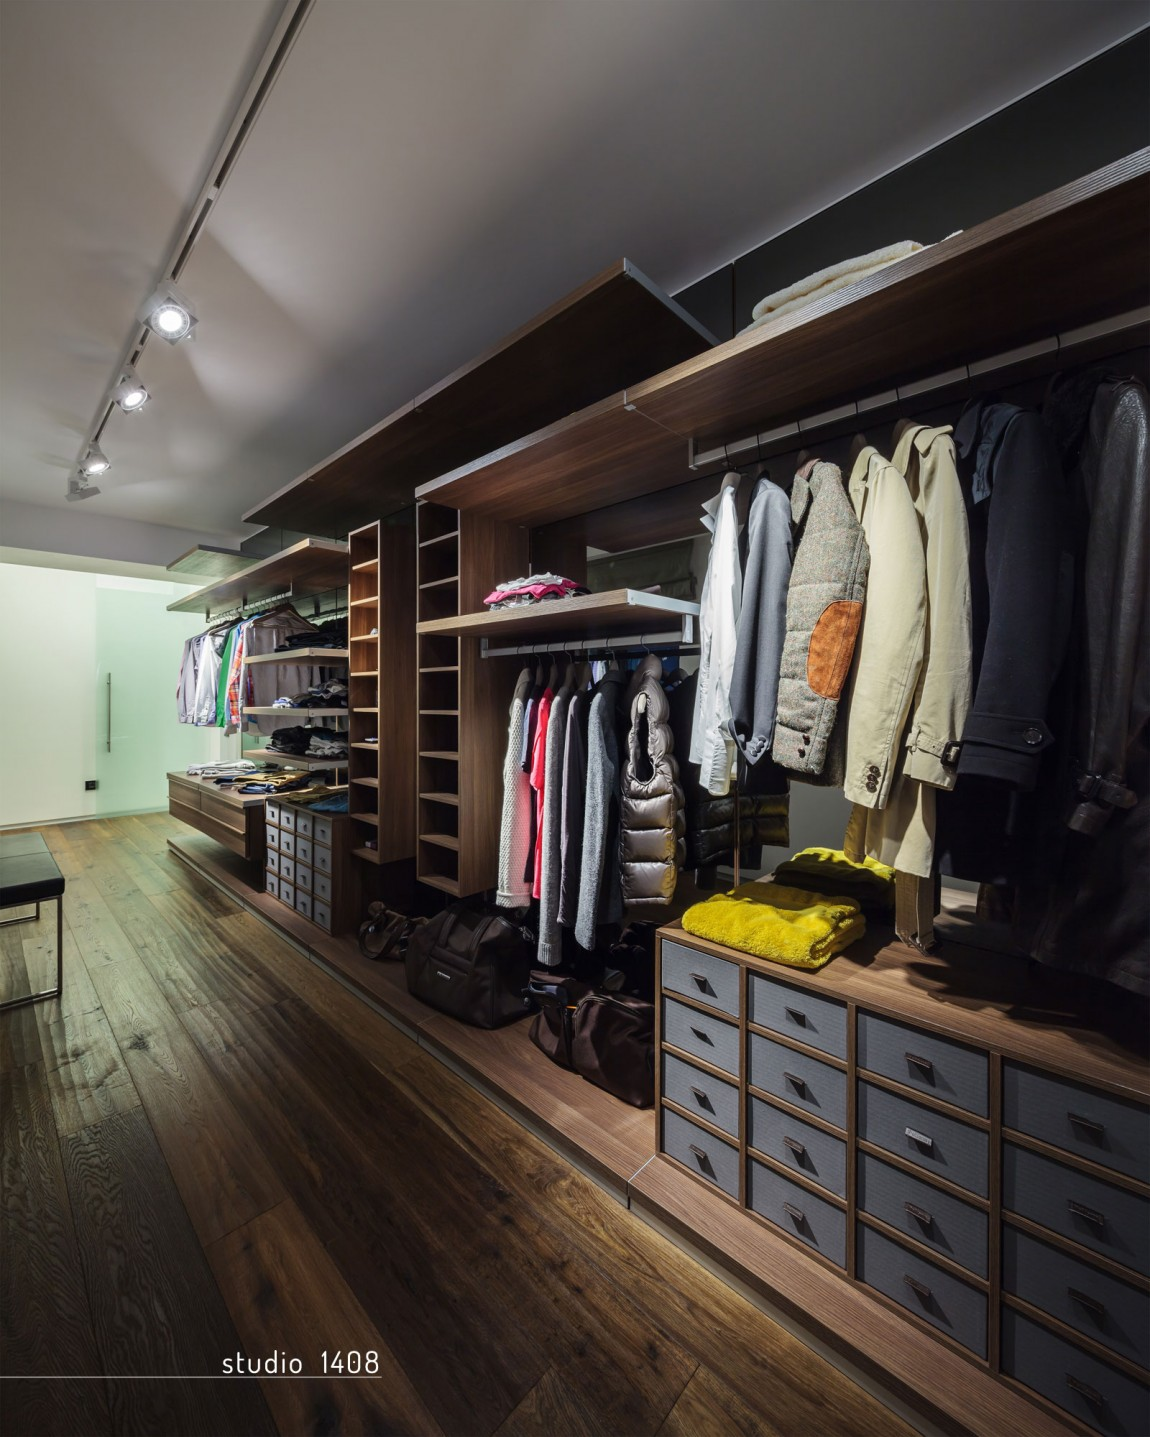 Stylish Walk-In Closet Ideas From Inspired Designers